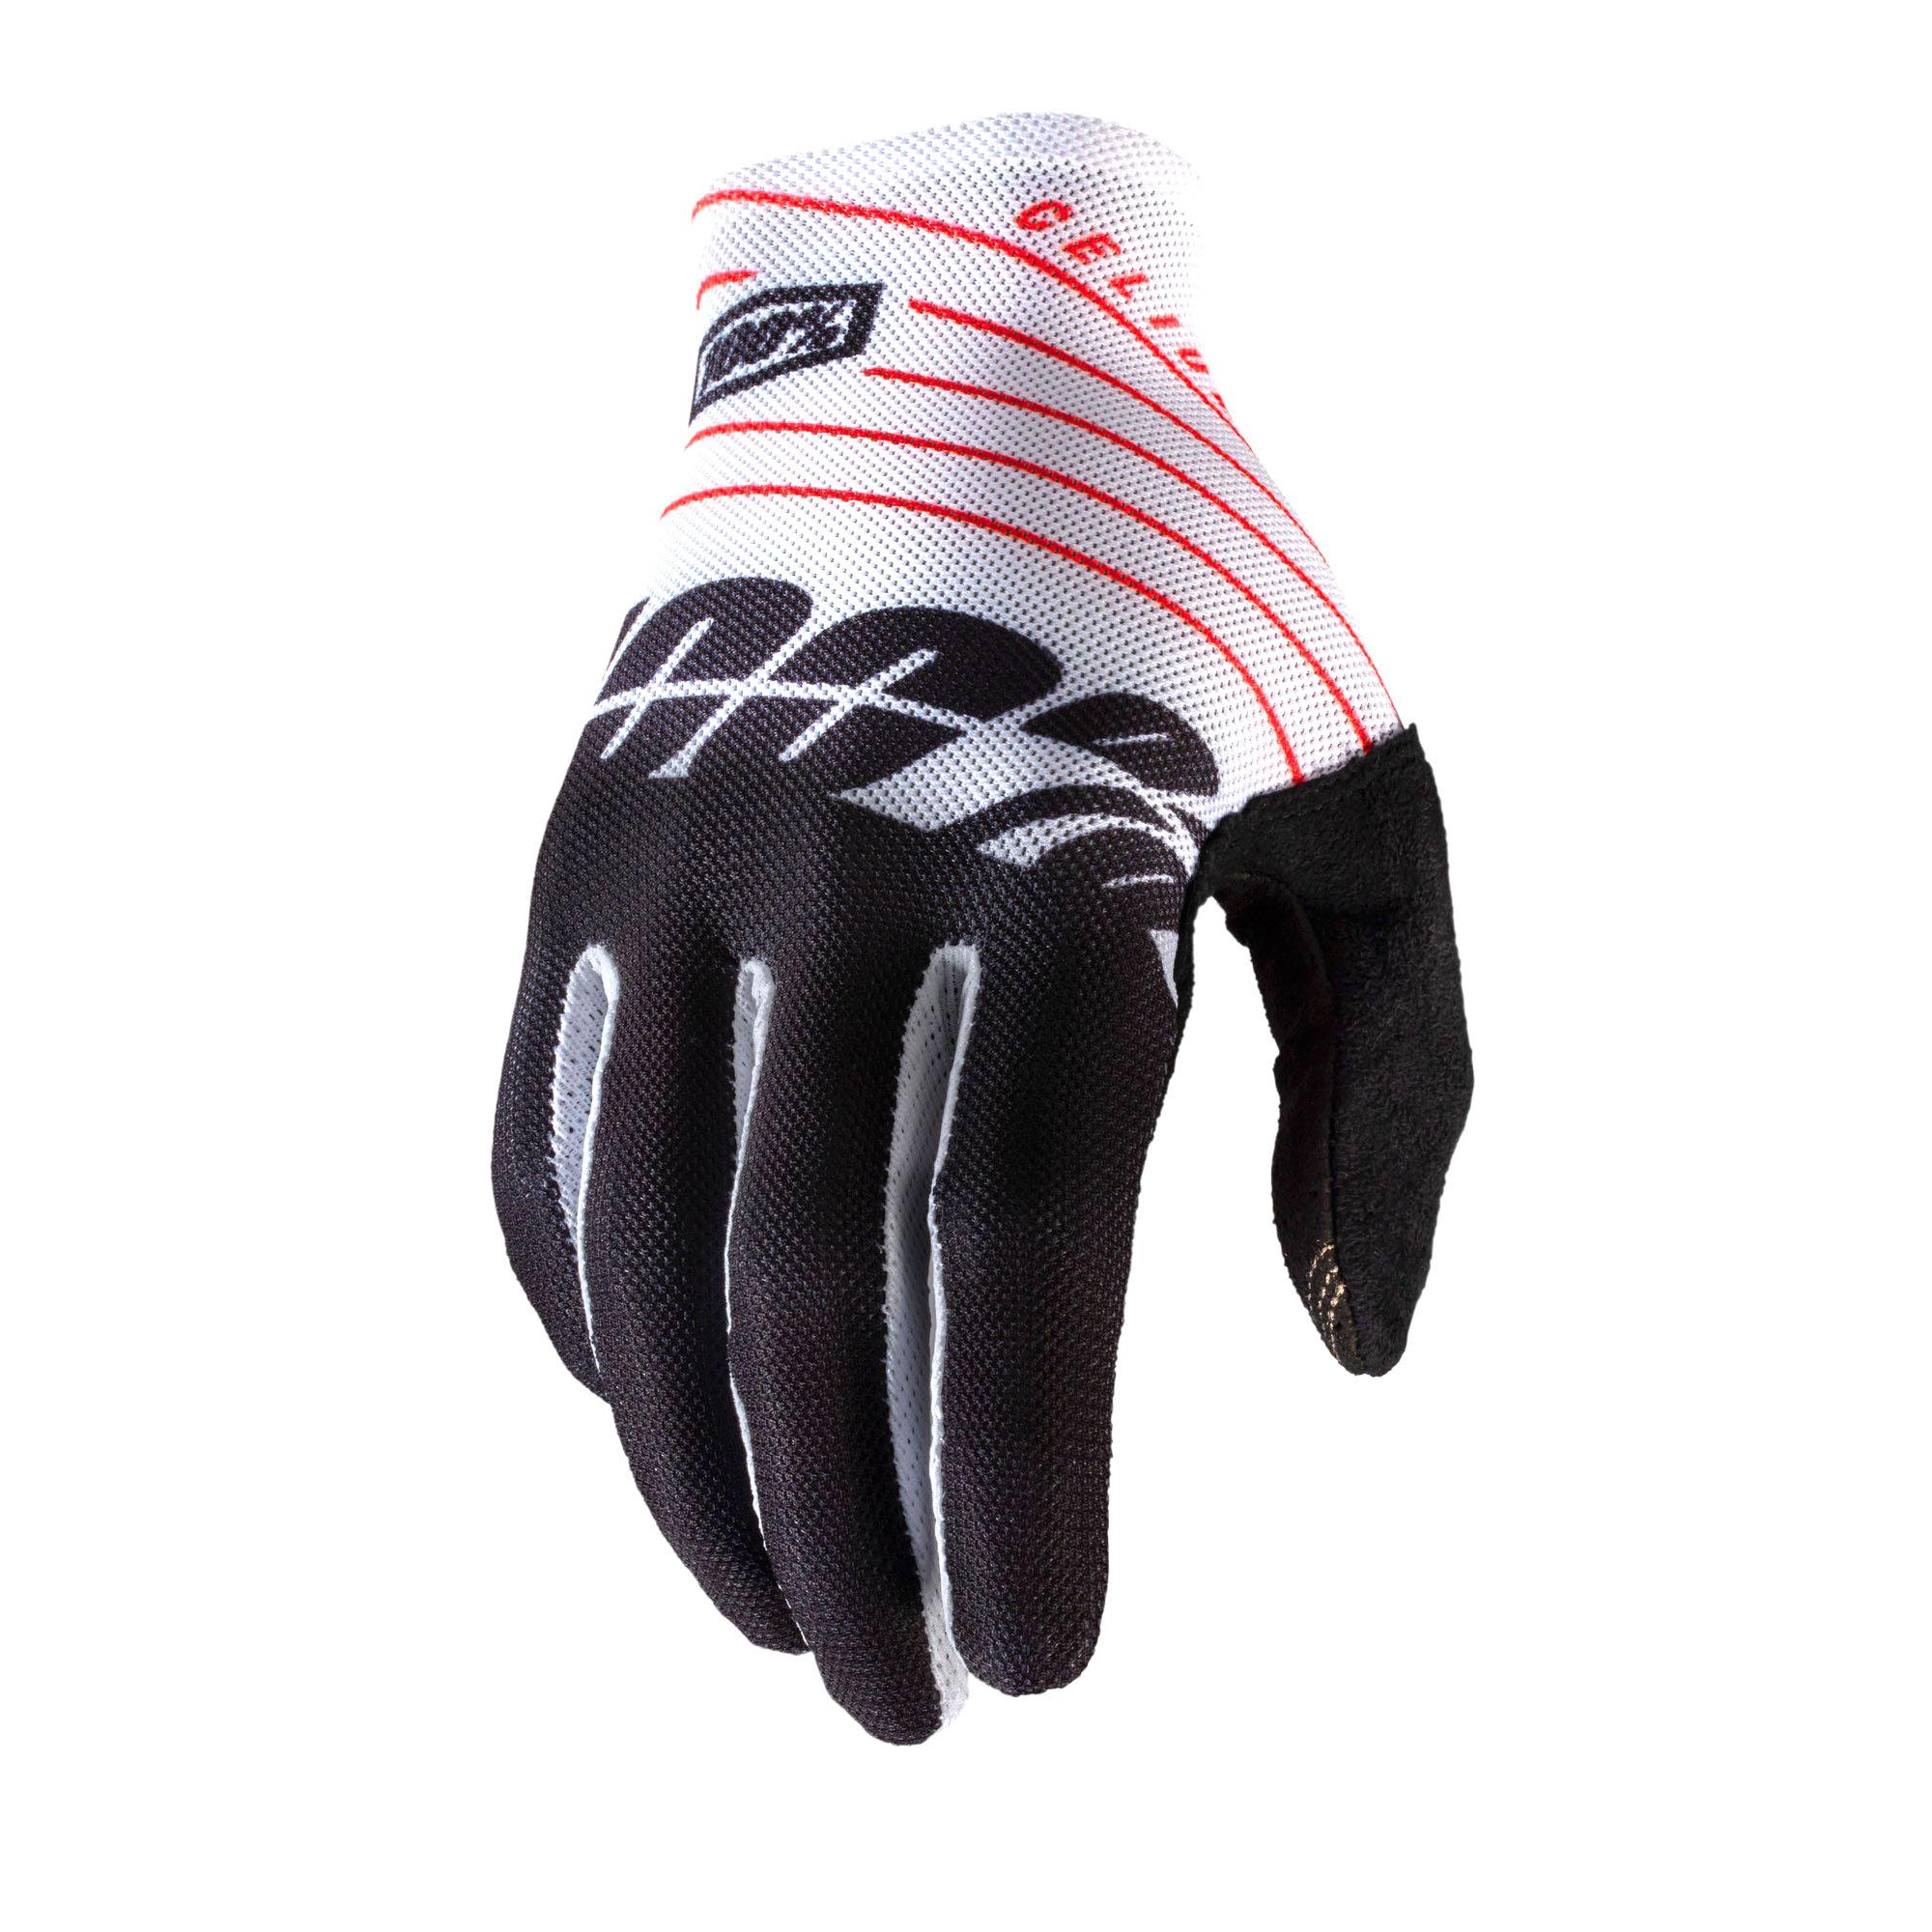 CELIUM Glove Black/White